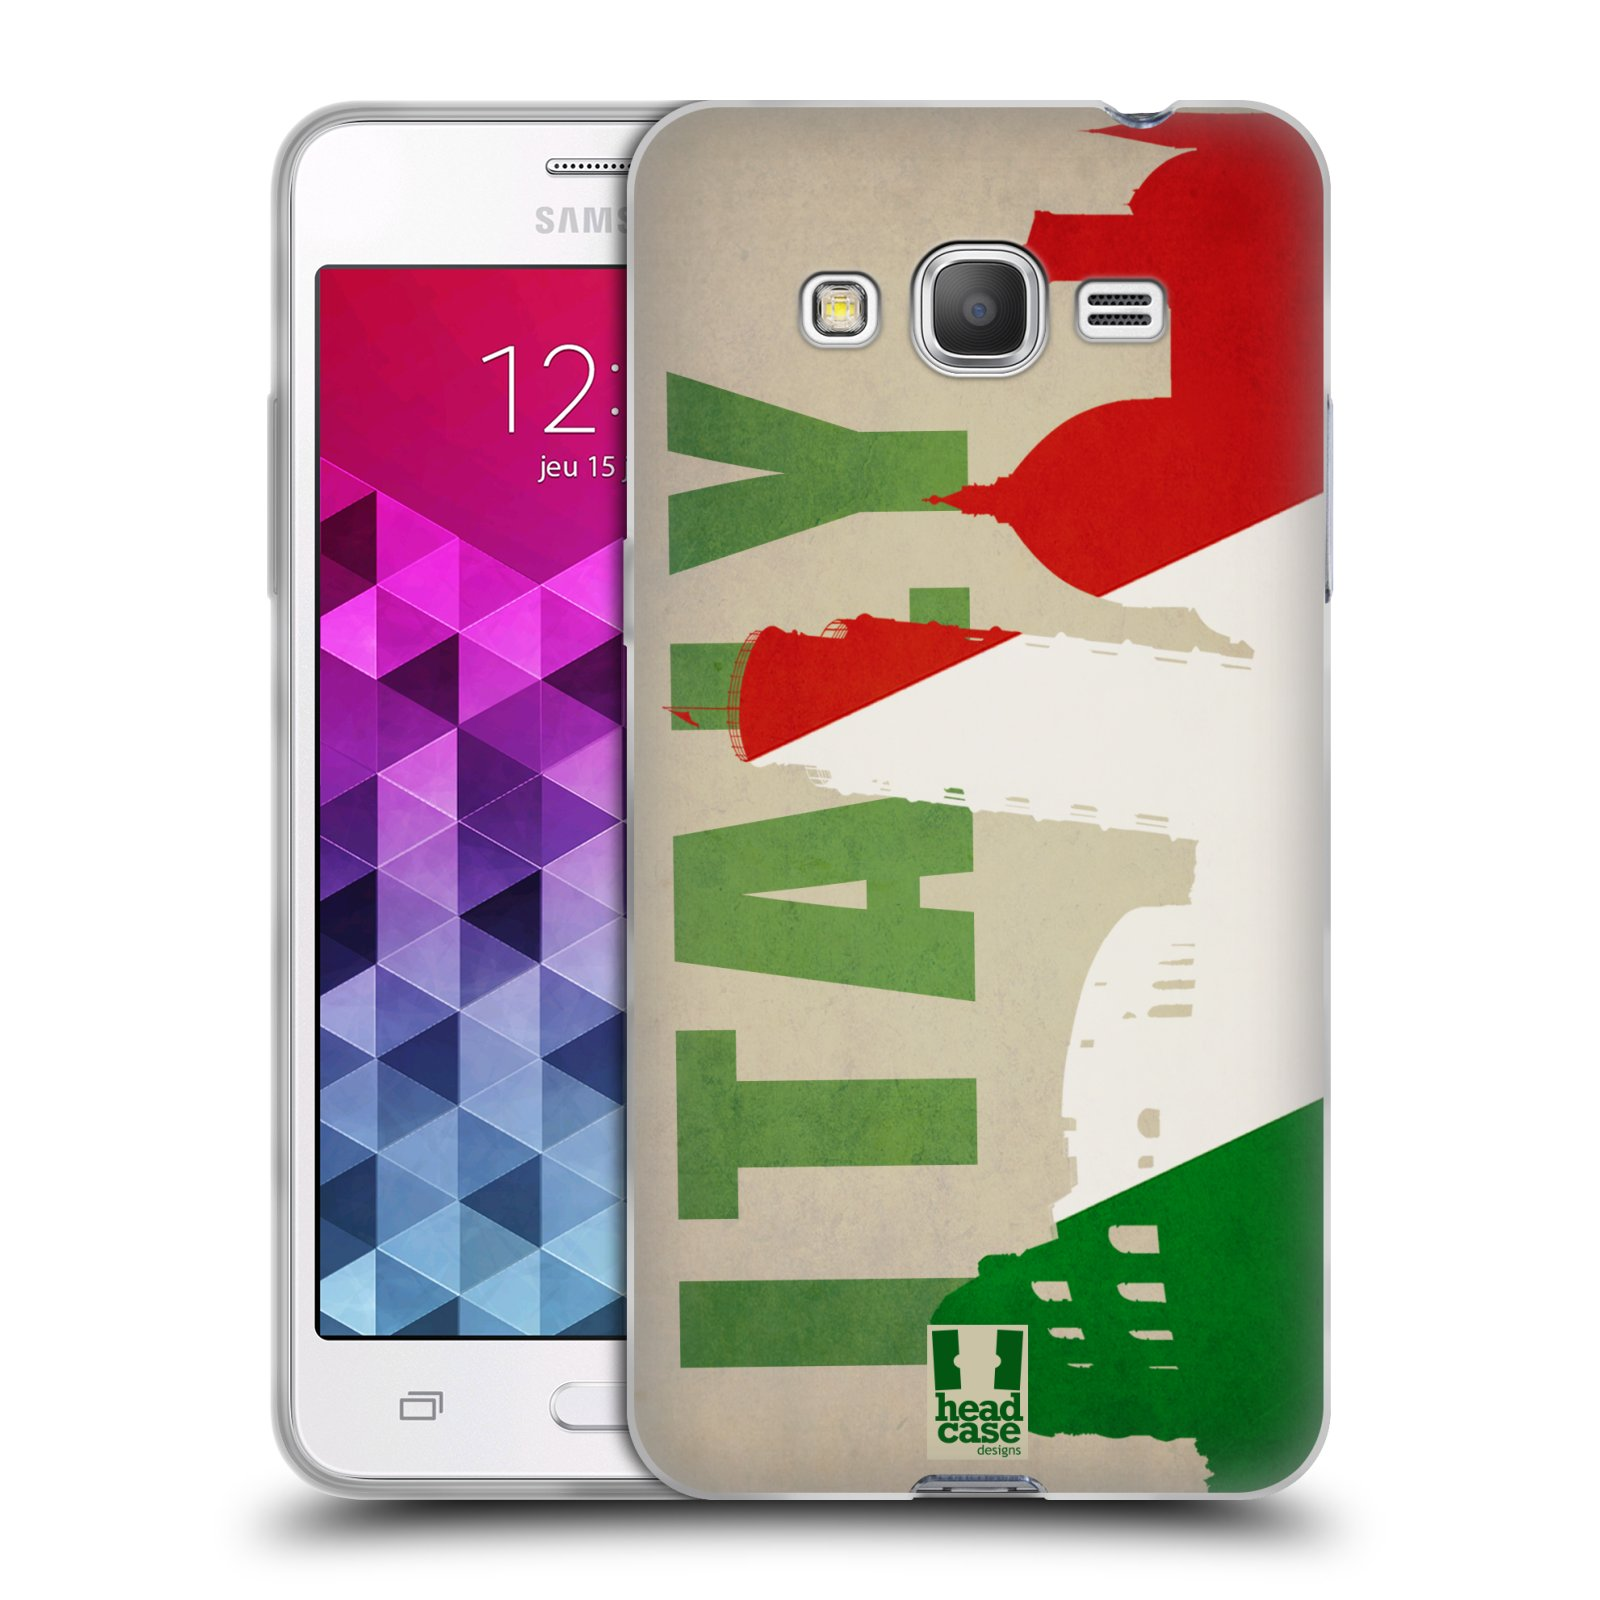 HEAD CASE FLAGS AND LANDMARKS GEL CASE FOR SAMSUNG GALAXY GRAND PRIME 3G DUOS